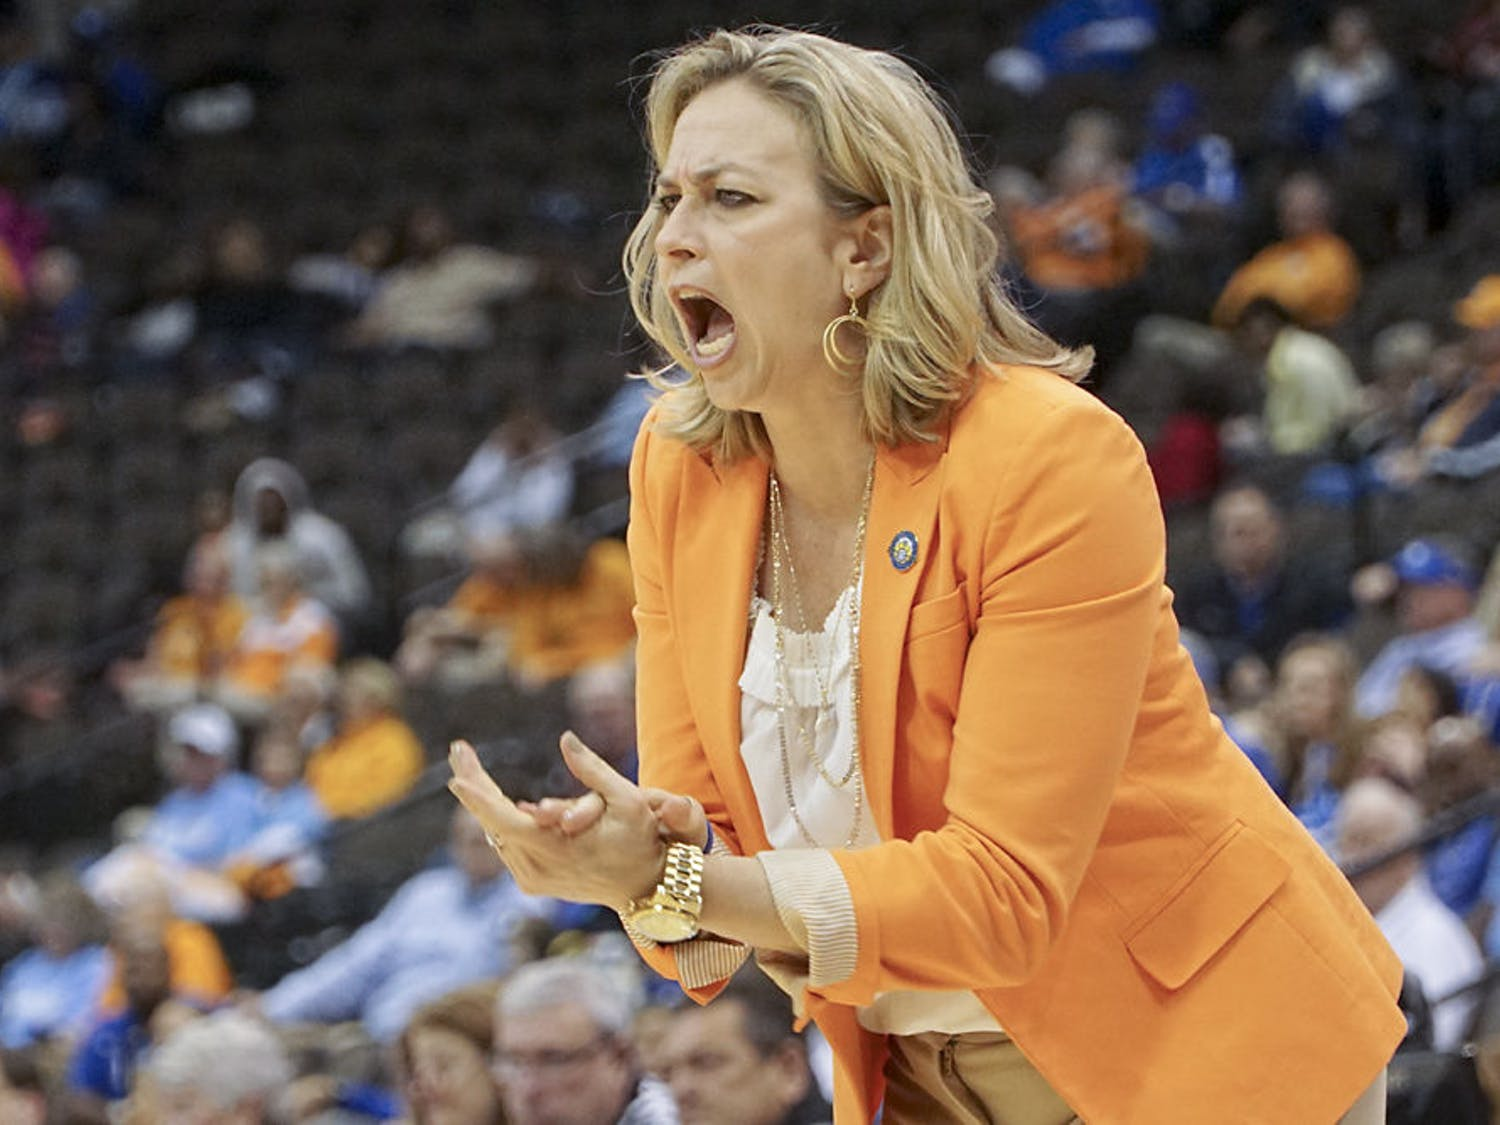 Amanda Butler calls out instructions during Florida's 92-69 loss to Kentucky at the SEC Tournament on March 4, 2016.